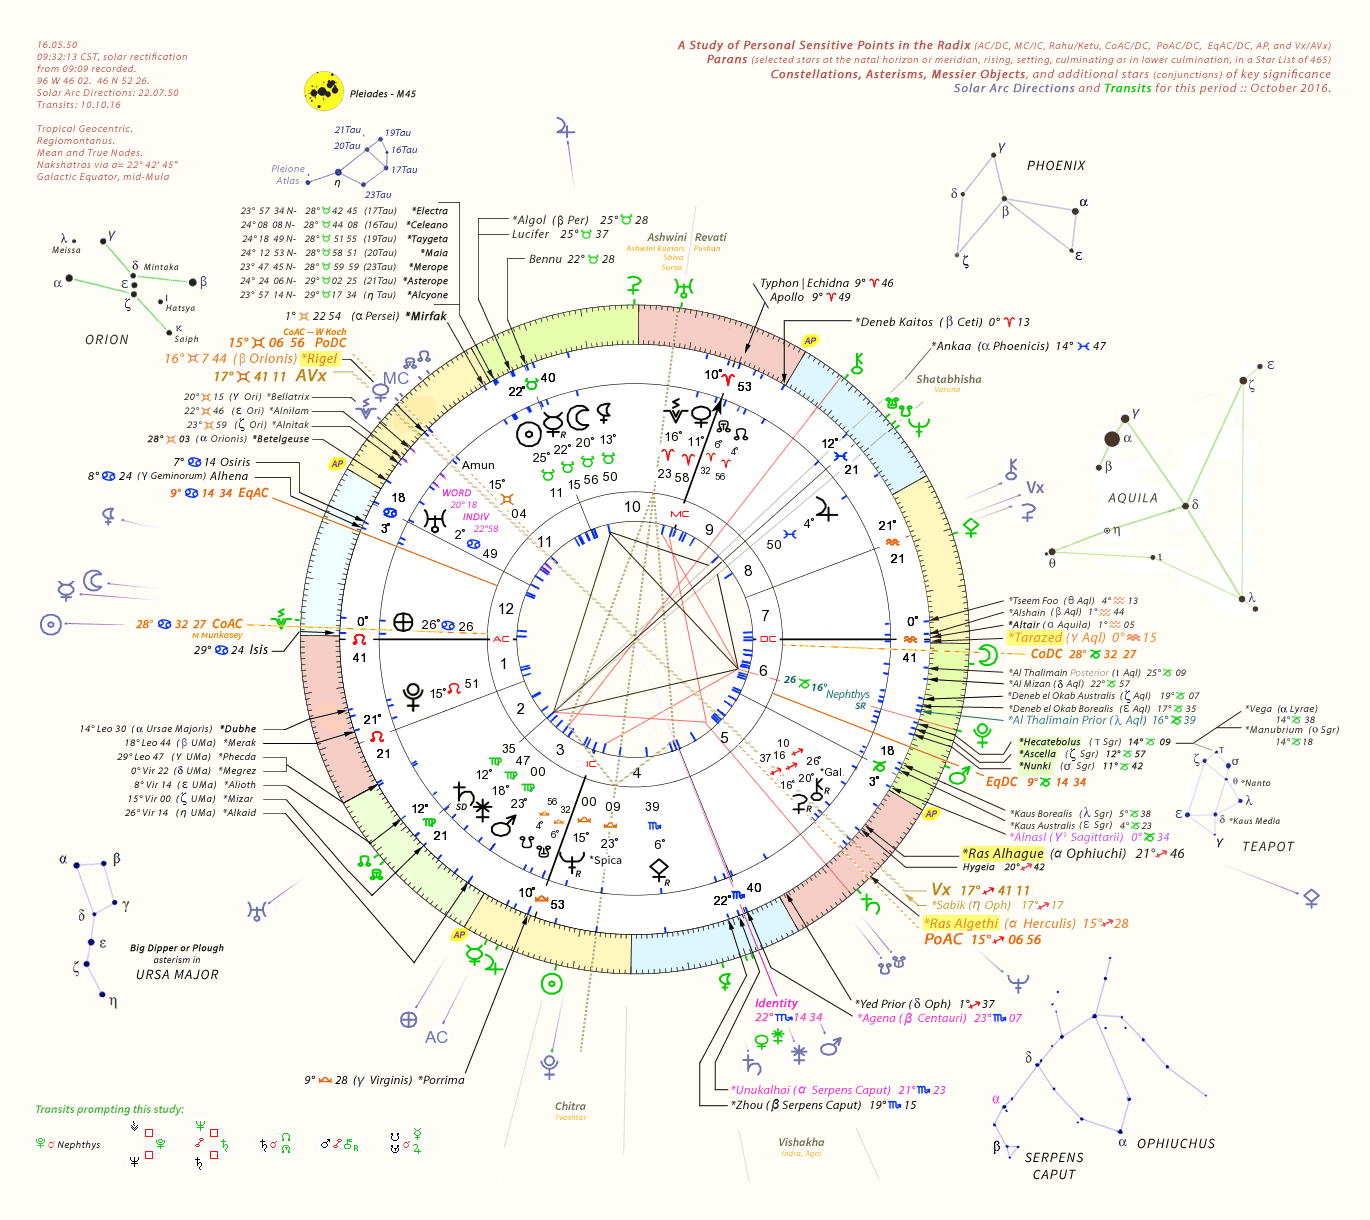 A study of Personal Sensitive Points in the radix, with Parans, Constellations and additional factors of relevance as transiting Neptune opposes Saturn.